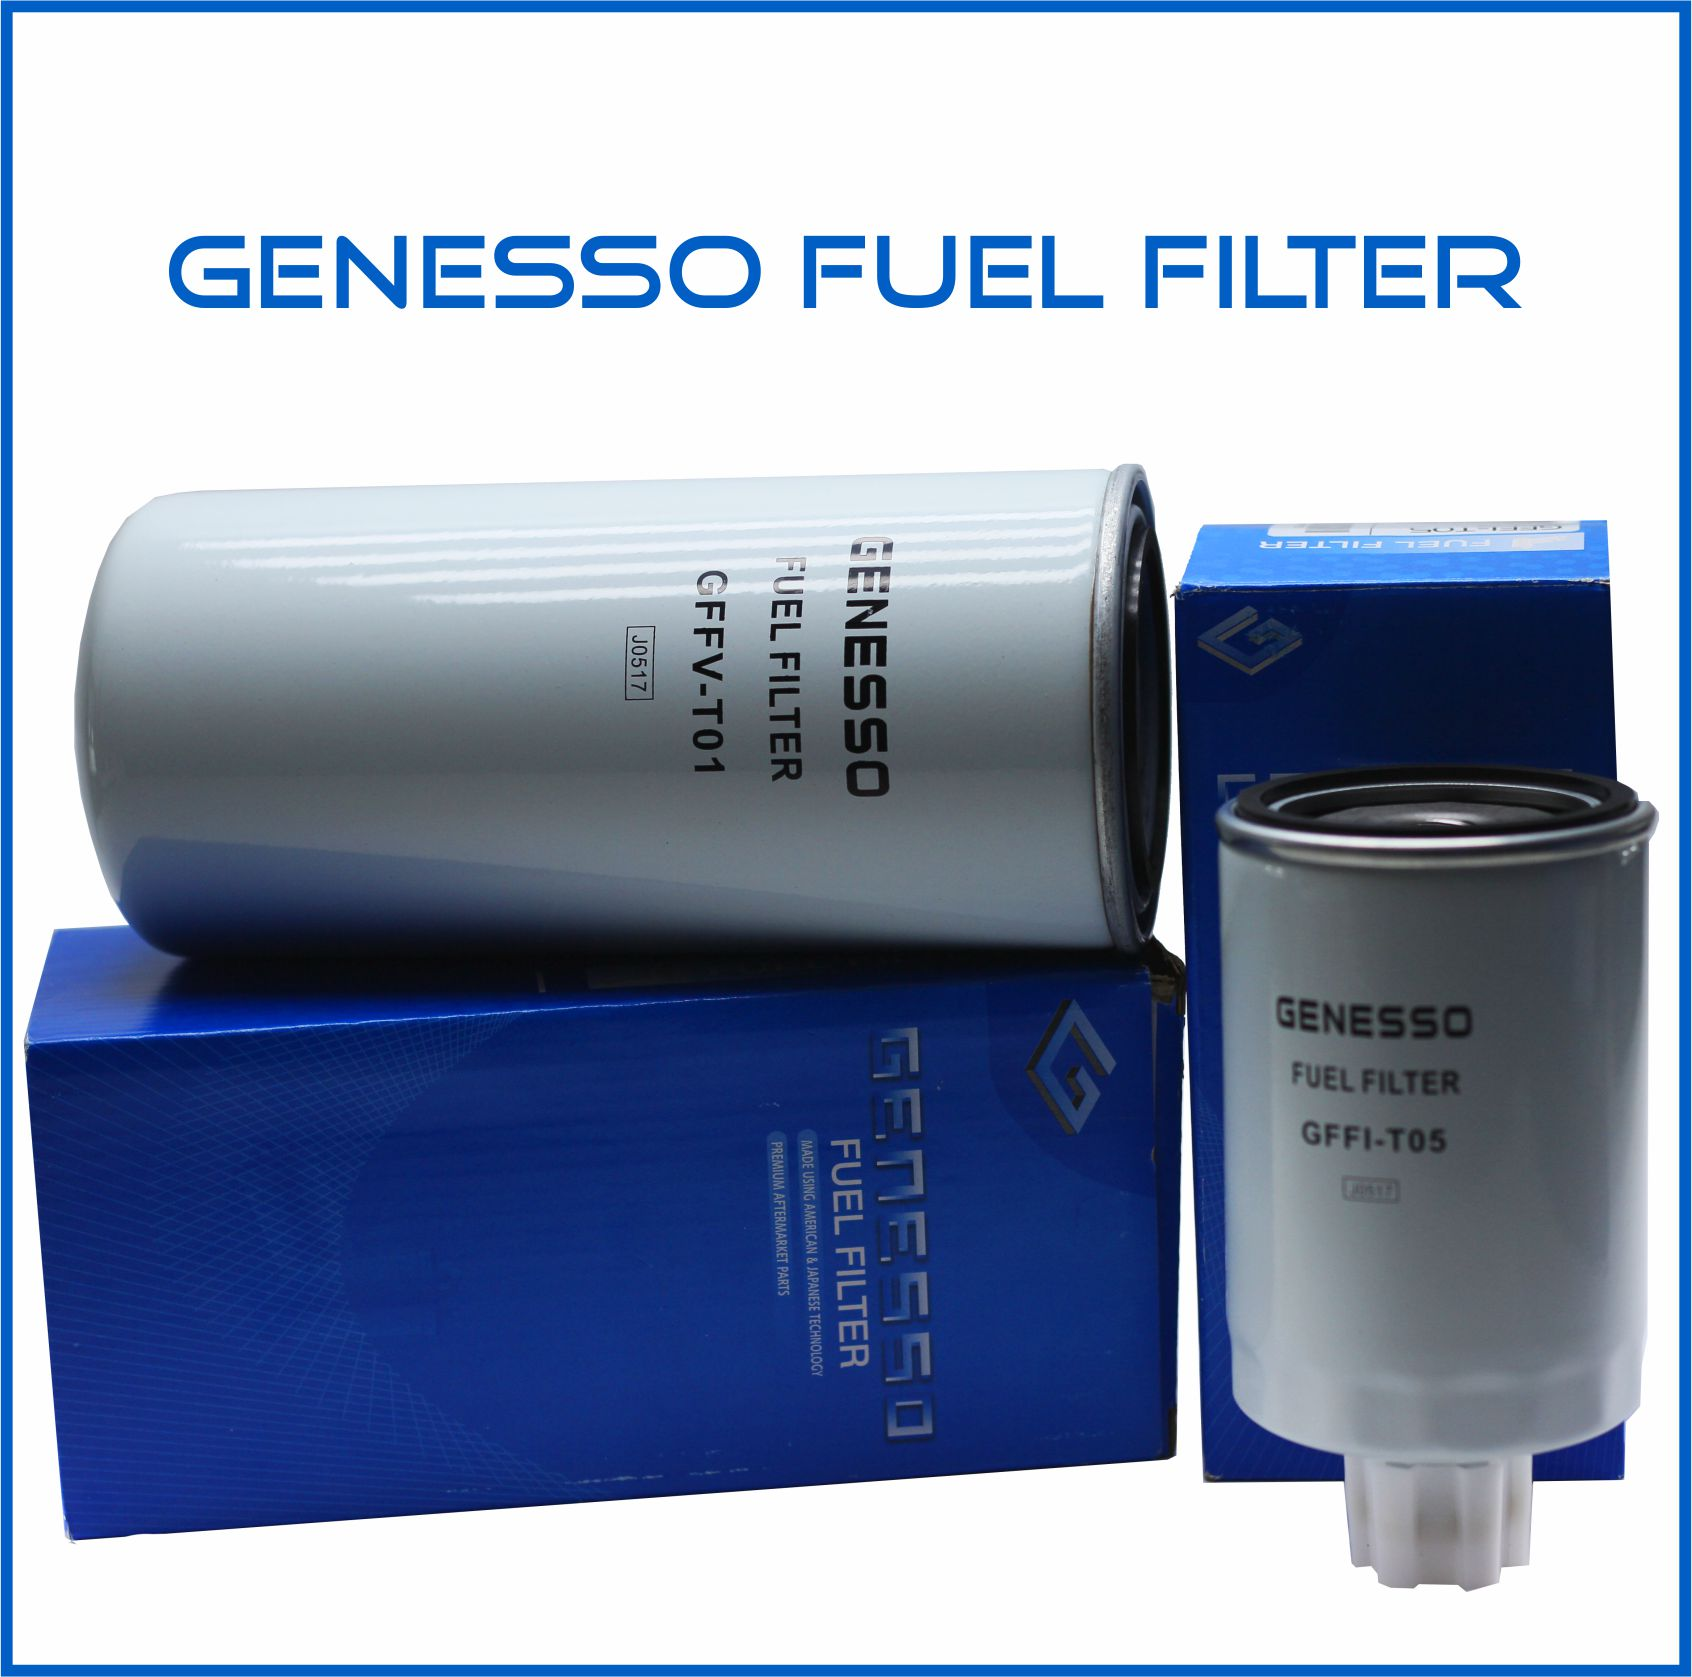 Genesso Fuel Filters